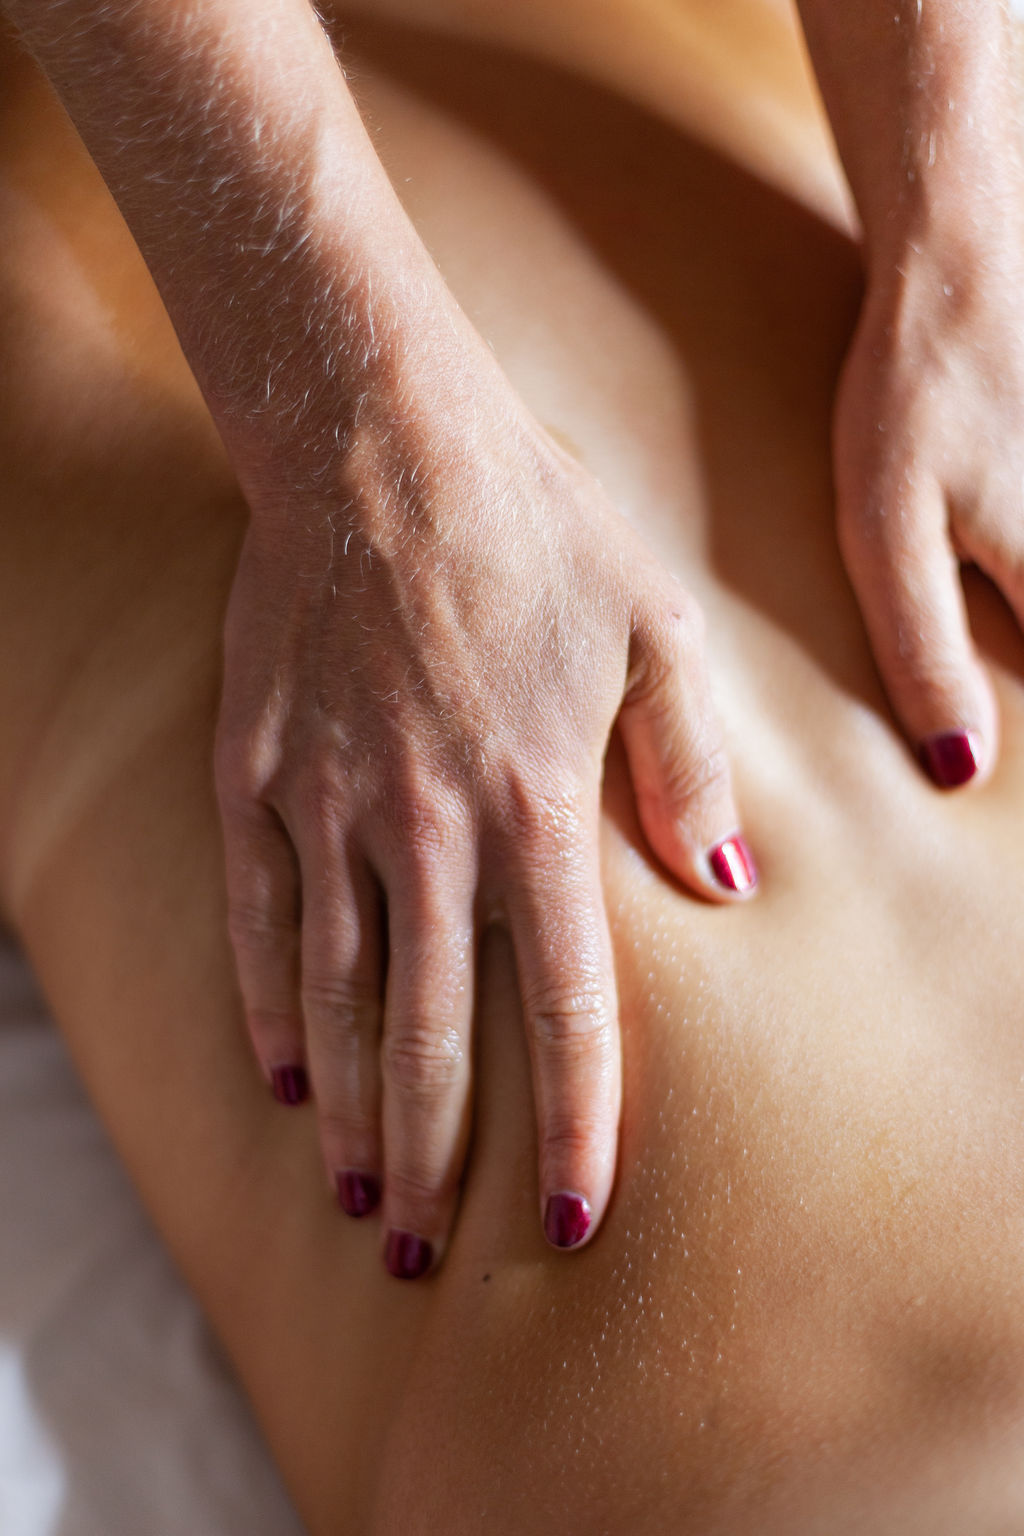 Back Treatment - Very often, people tend to ignore the hygiene and skin care for their backs. But like the skin on our face, pores on the back can get clogged with oils and bacteria and thus, allow for black heads, white heads and pimples or acne to be formed.On the other hand, there are many people who get too enthusiastic about wanting to look good instantly and over scrub their backs in the shower. Little do they understand that unless the bath tools used are clean or sanitized, warm water and a dirty scrub will contribute to a blemished back.At a.&co. Salon & Spa, our experienced estheticians can help assess the skin condition of your back and we will recommend treatments Depending on time frame and budget, a glycolic peel or salicylic peel can be added to complete the effect and ensure clear skin on your back1 hour starting at $55chemical peel add-on: $20